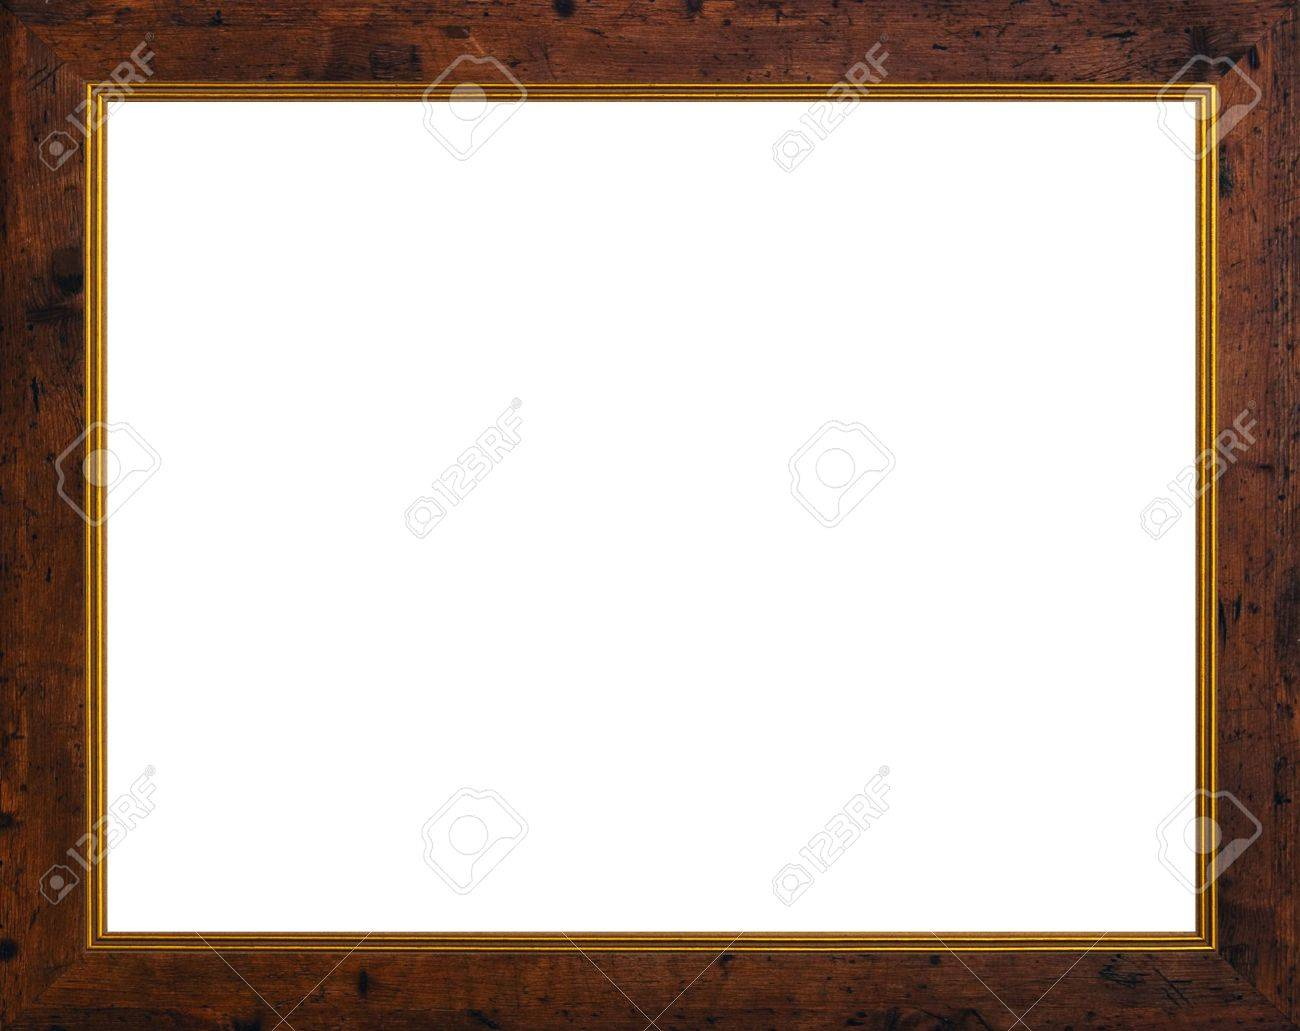 stock photo old style wooden photo frame with two little golden frames isolate on white